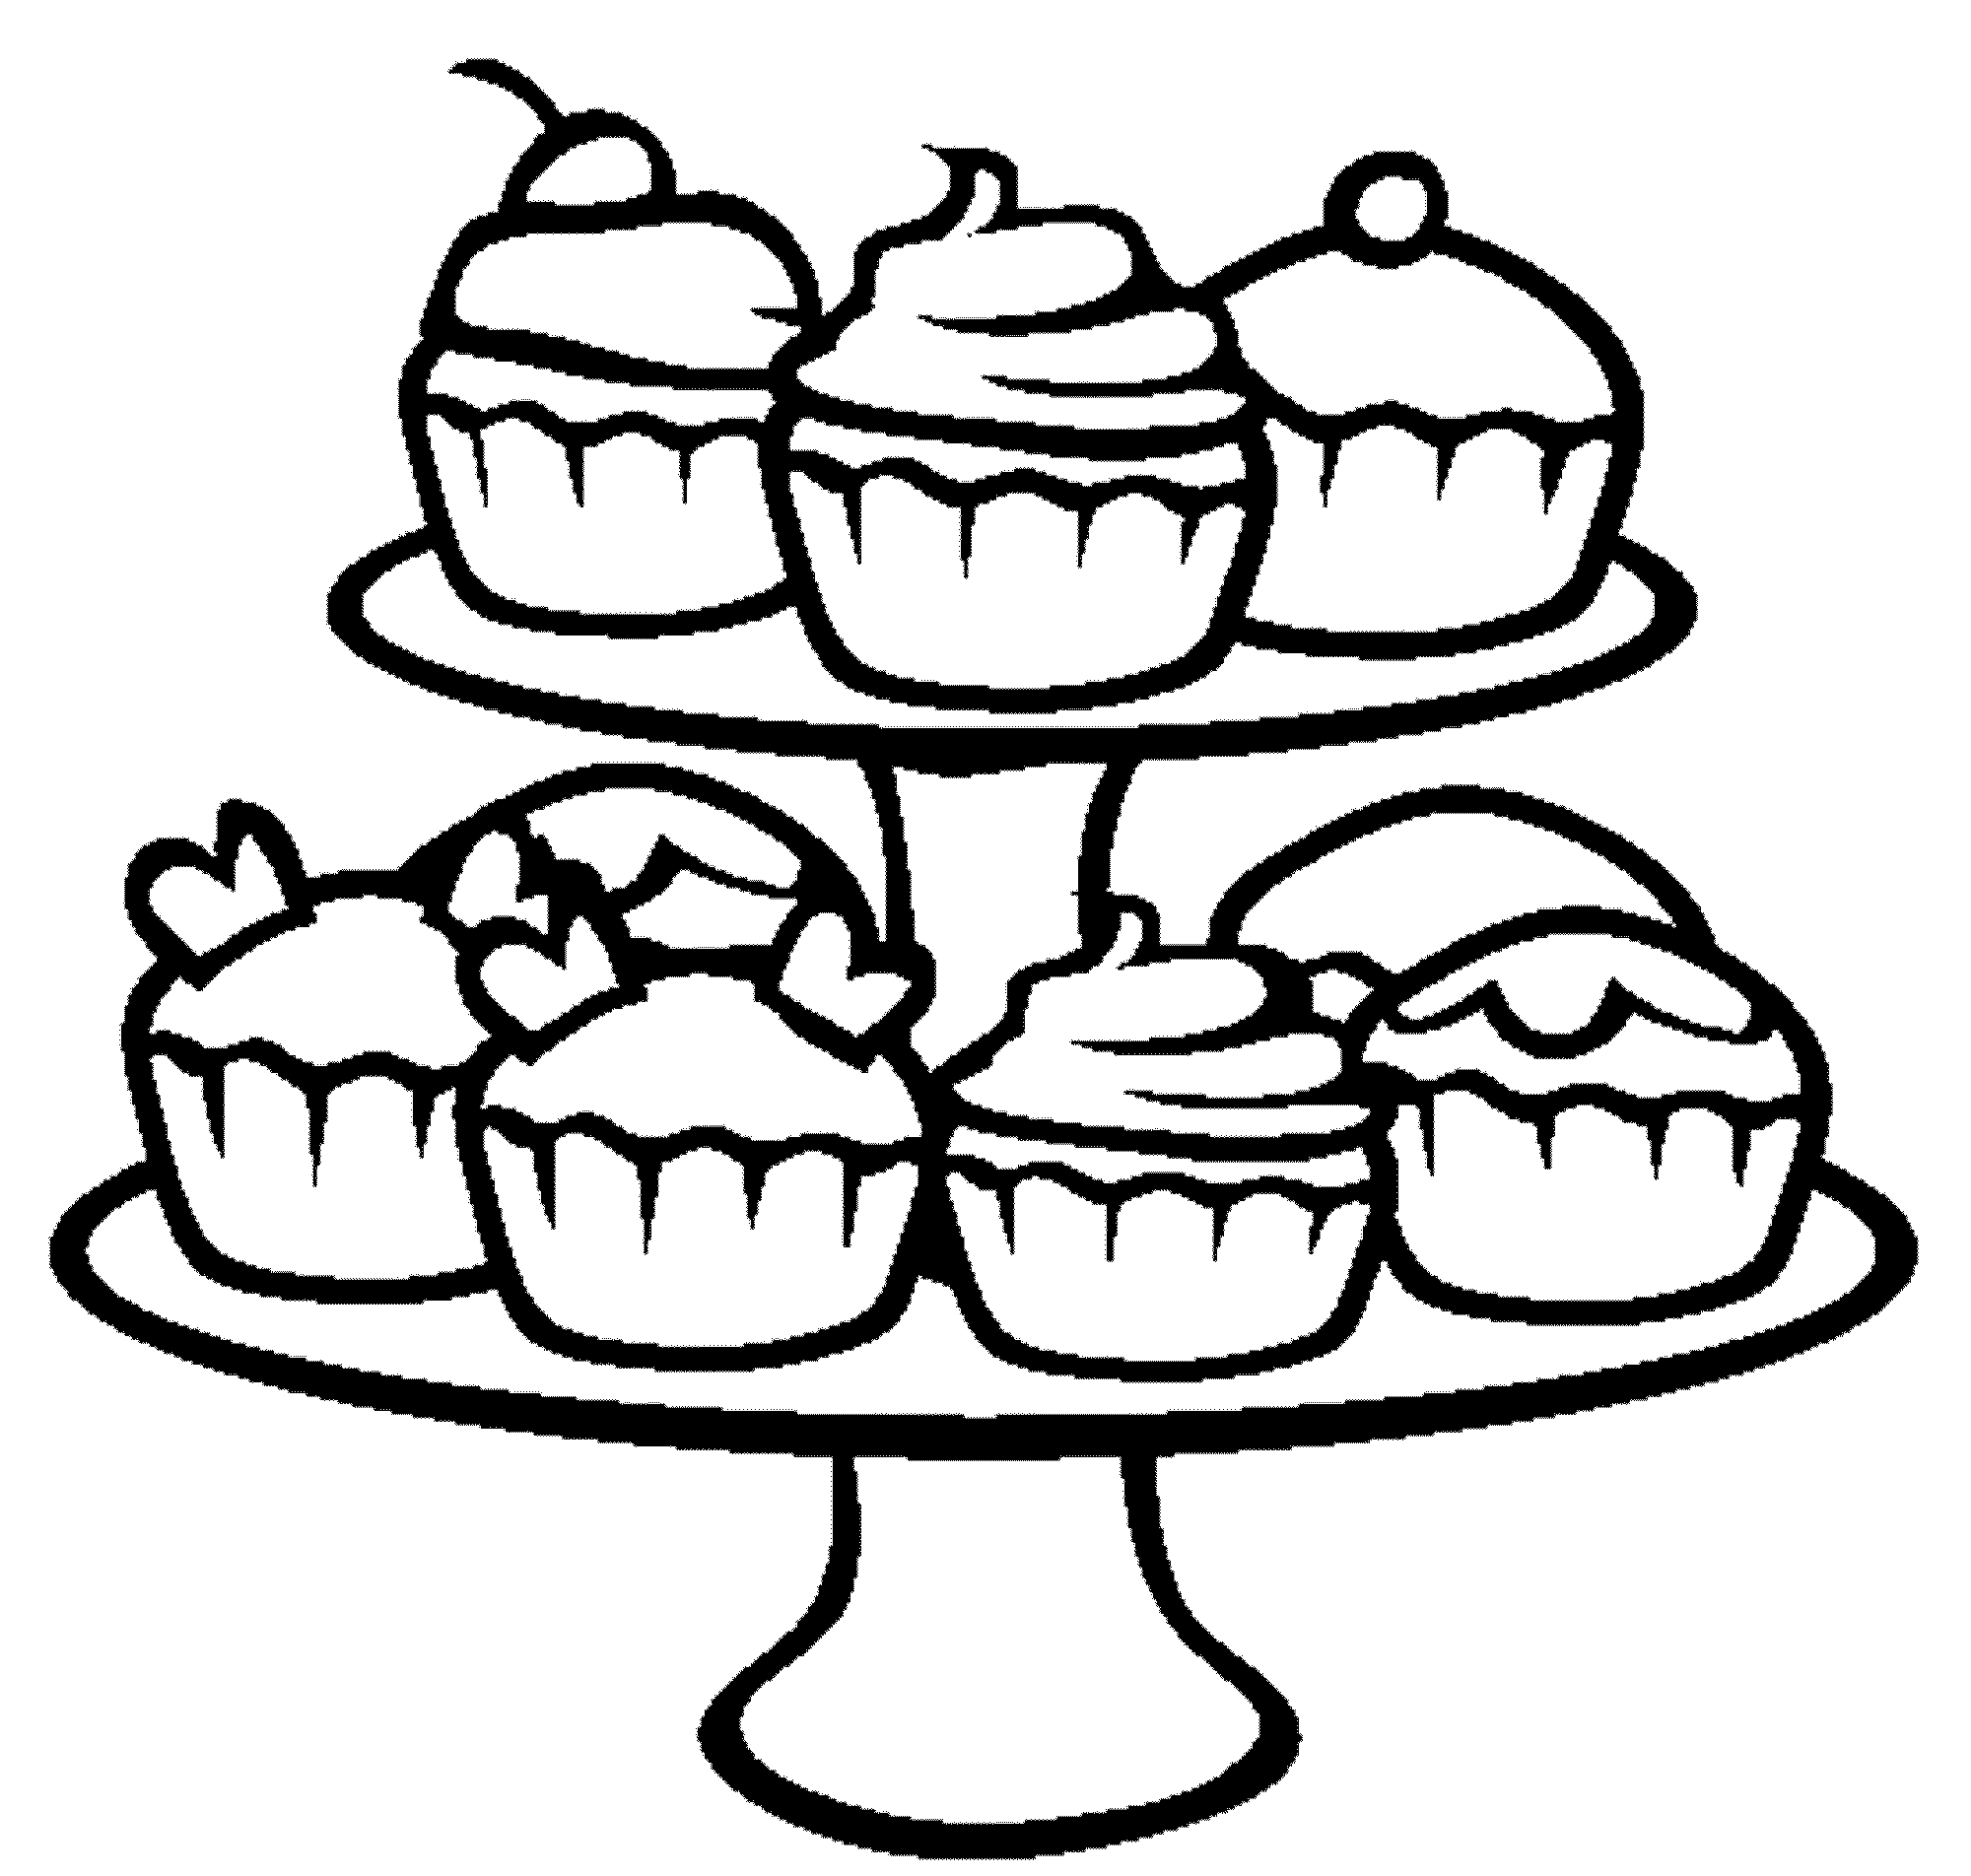 Cupcake Clipart Black And White